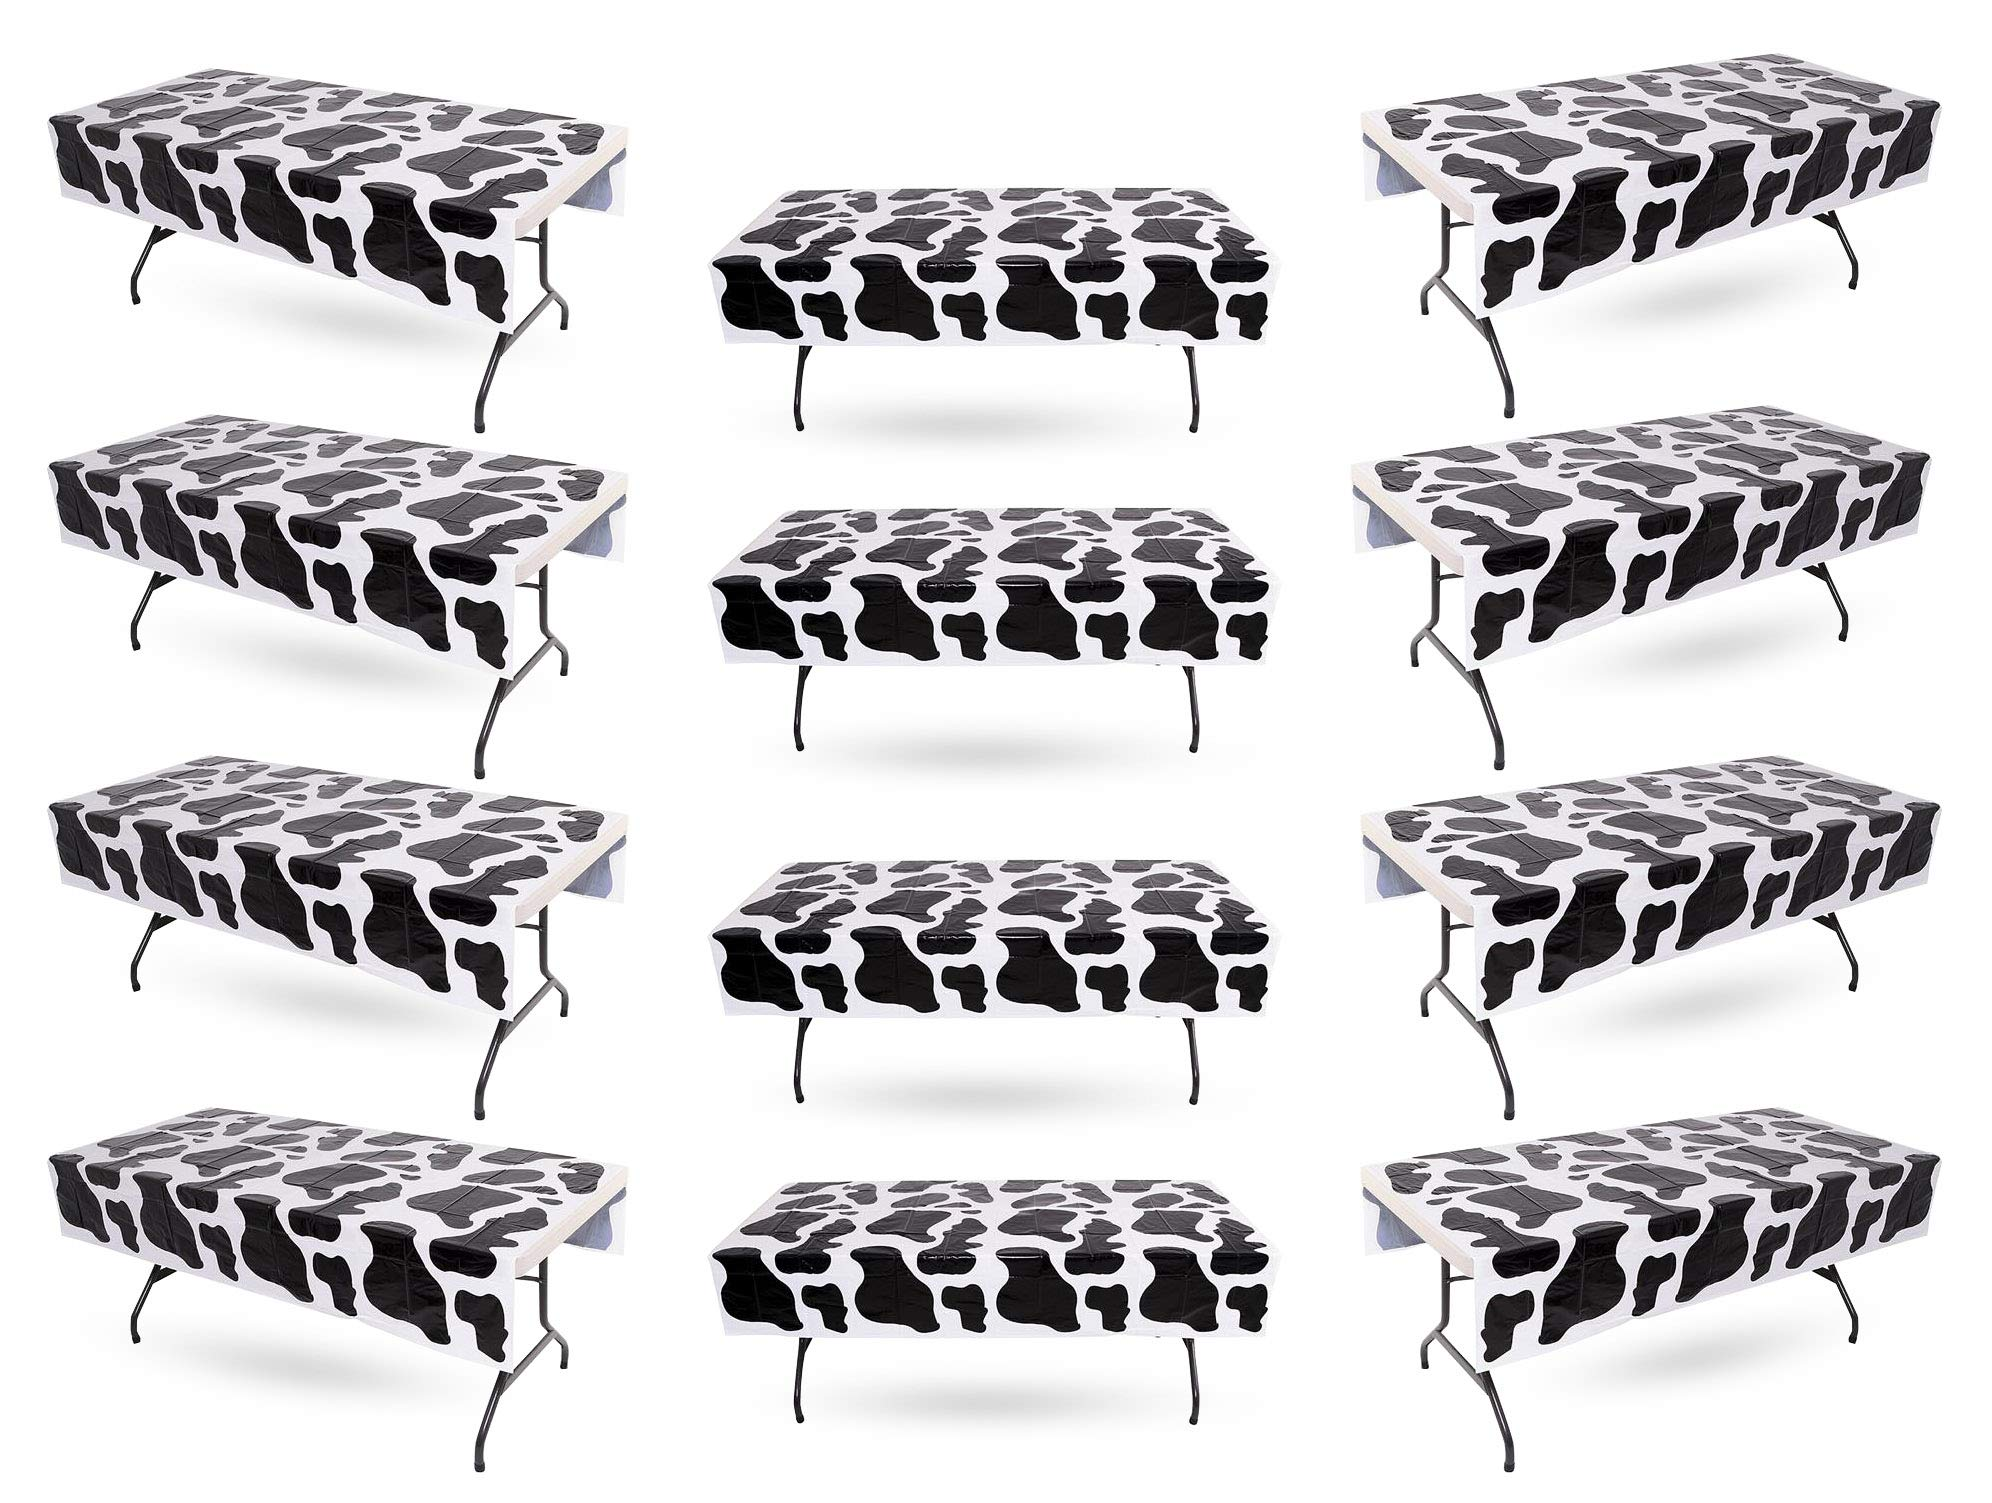 Cow Print Tablecloth Bulk Pack of 12 Plastic Table Covers - Birthday Party, Carnival, Farm Animal, Party Supplies, 54'' x 72'' By 4E's Novelty by 4E's Novelty